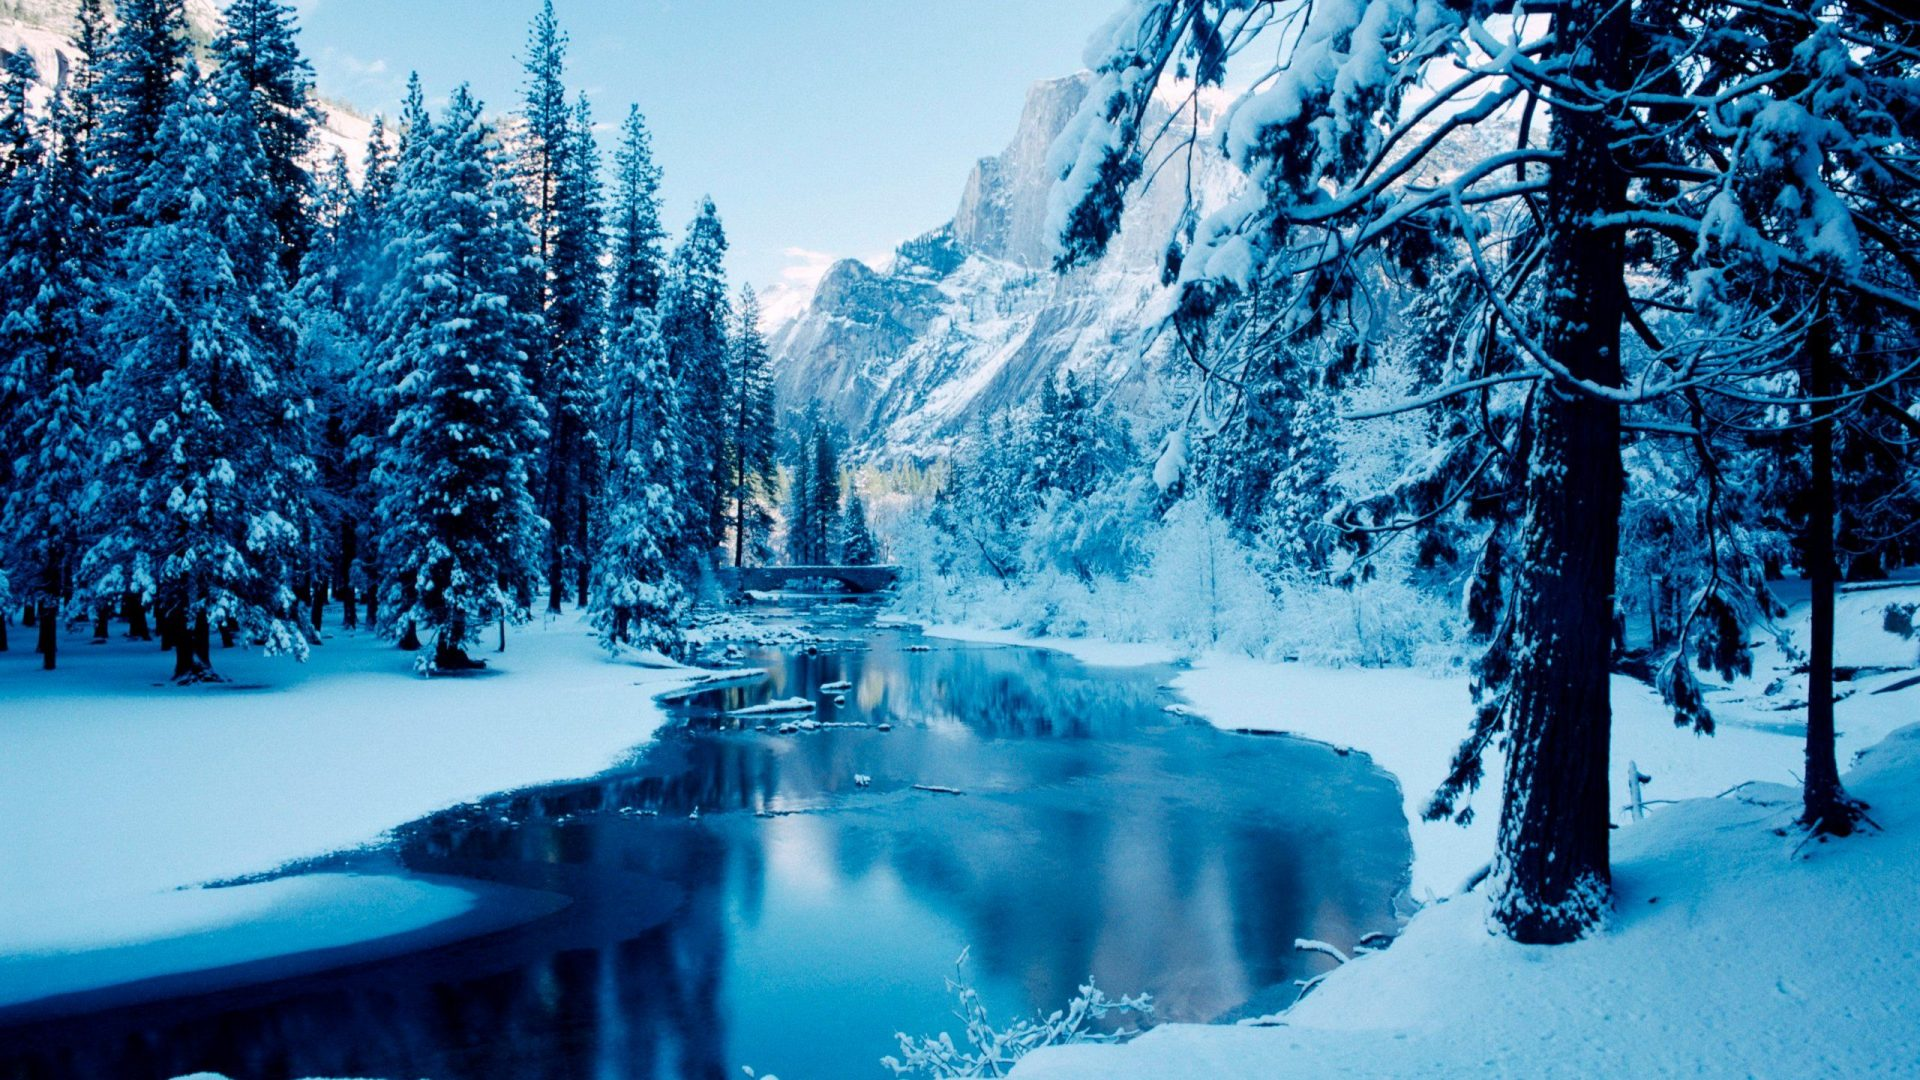 wallpaper.wiki-Winter-nature-desktop-background-1920x1080-PIC-WPD0010124